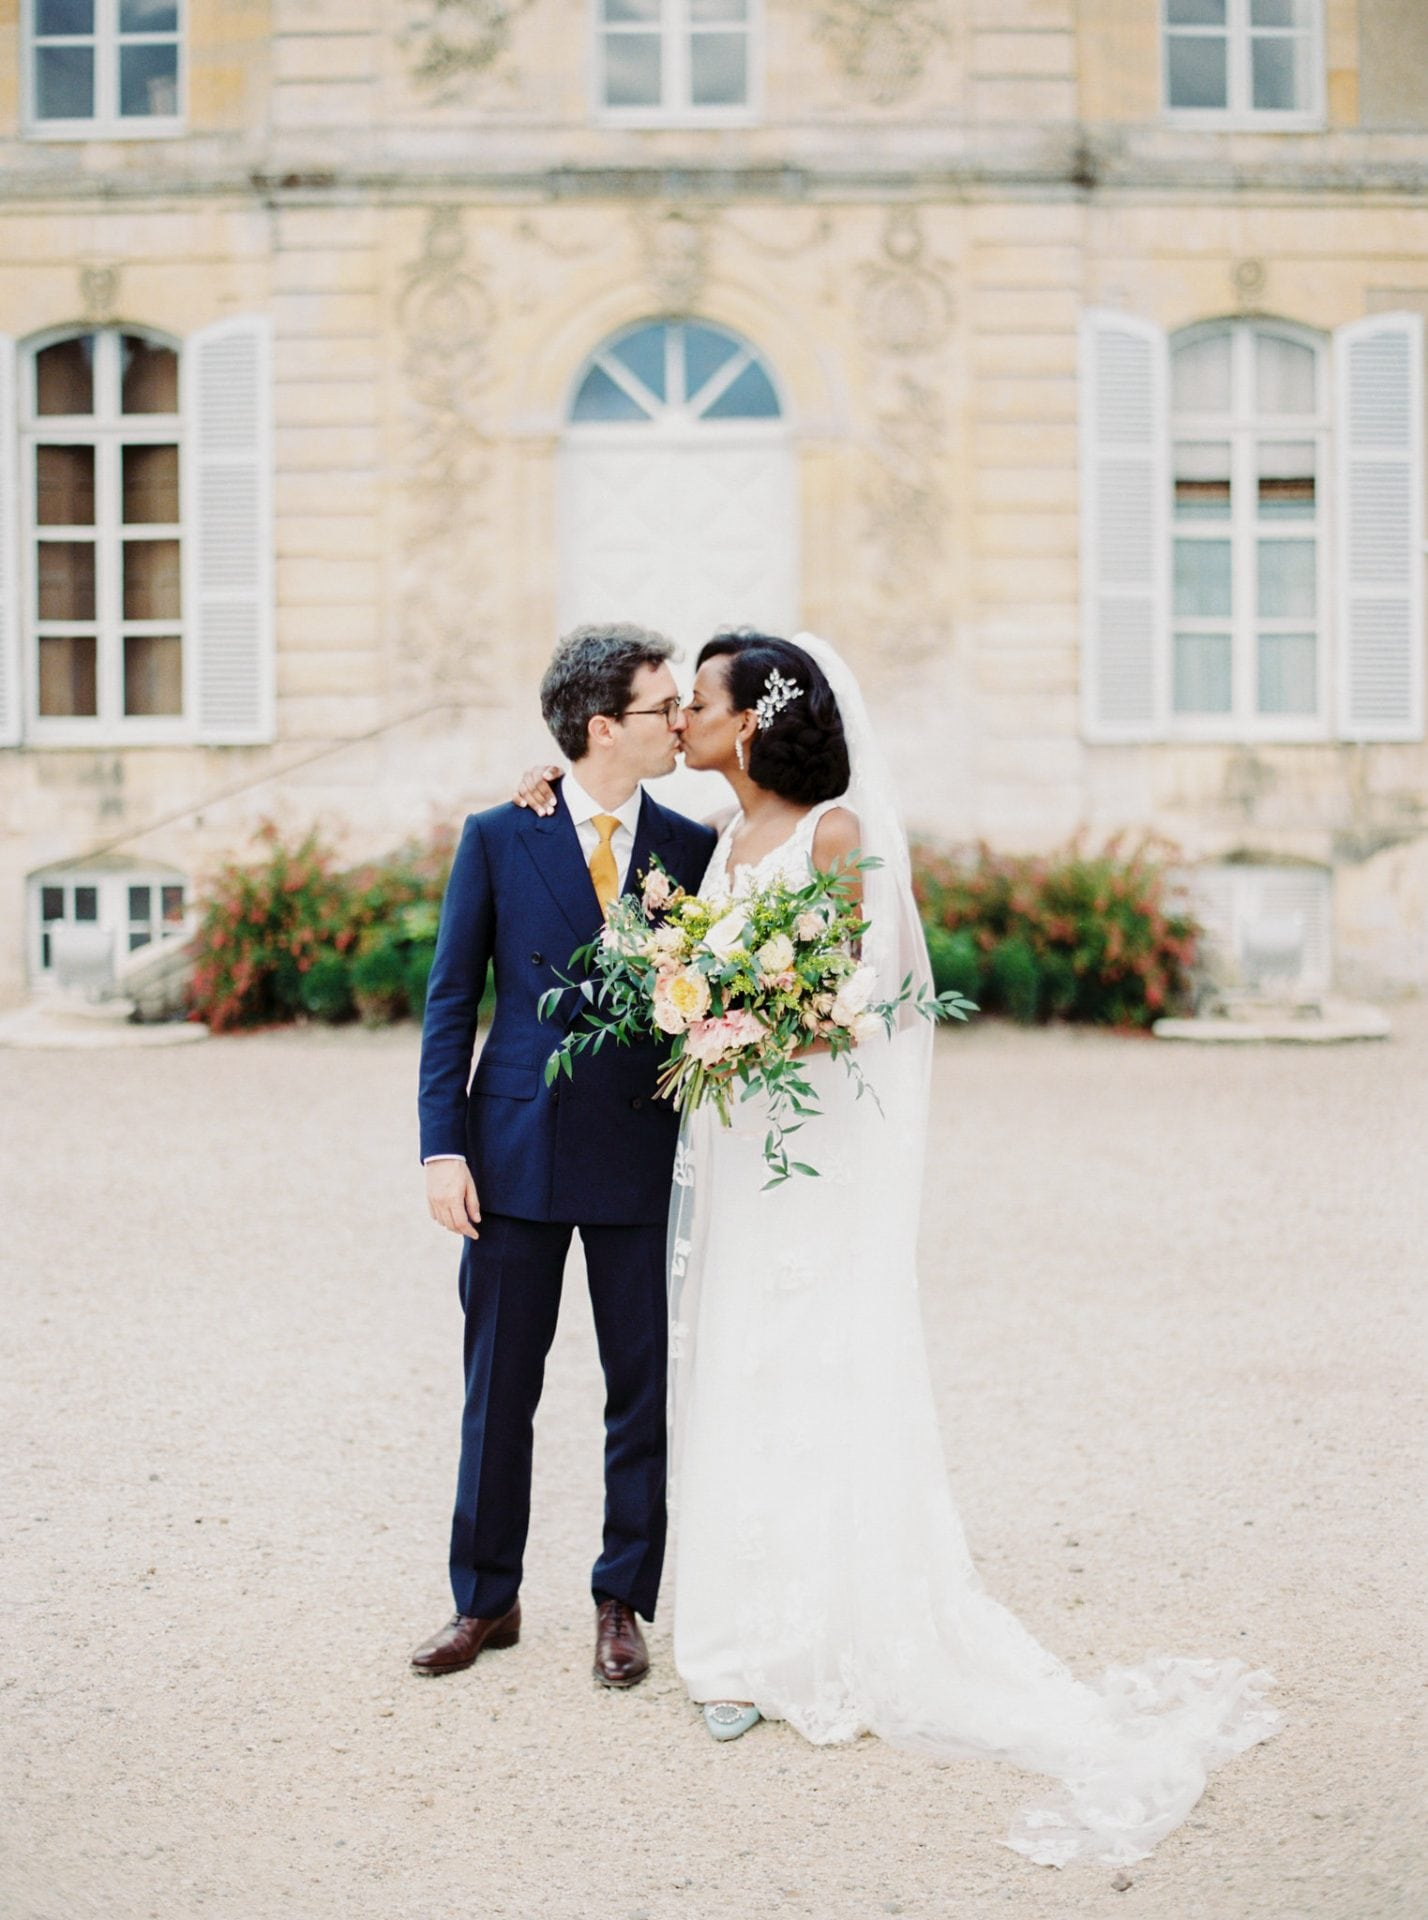 Bride and groom chateau portrait at a wedding in France